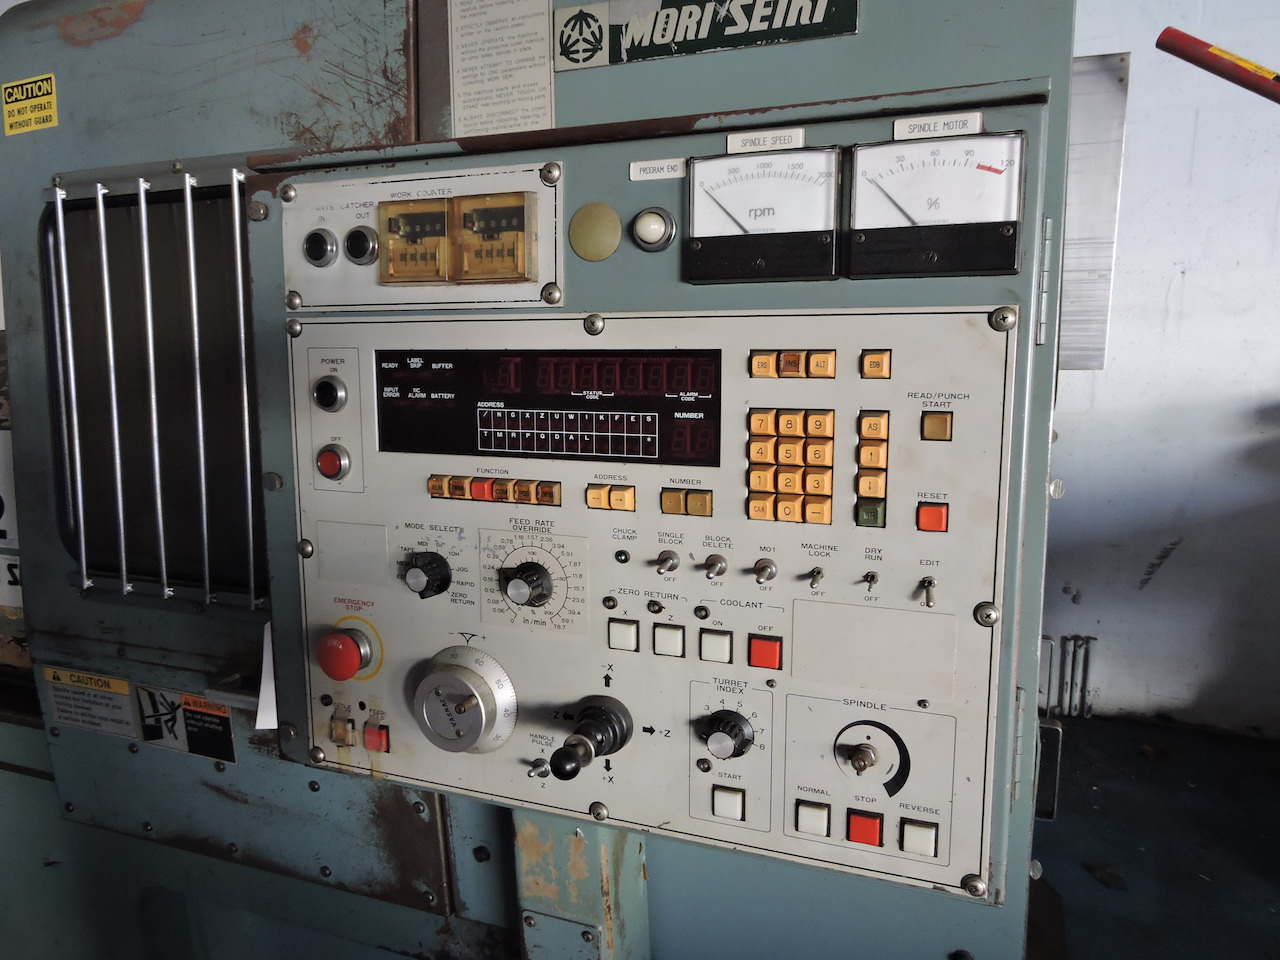 Lot 1 - MORI SEIKI SL-2B TURNING CENTER WITH YASNAC CONTROL, 8 STATION TURRET, TOOLING, CHUCK AND COLLET